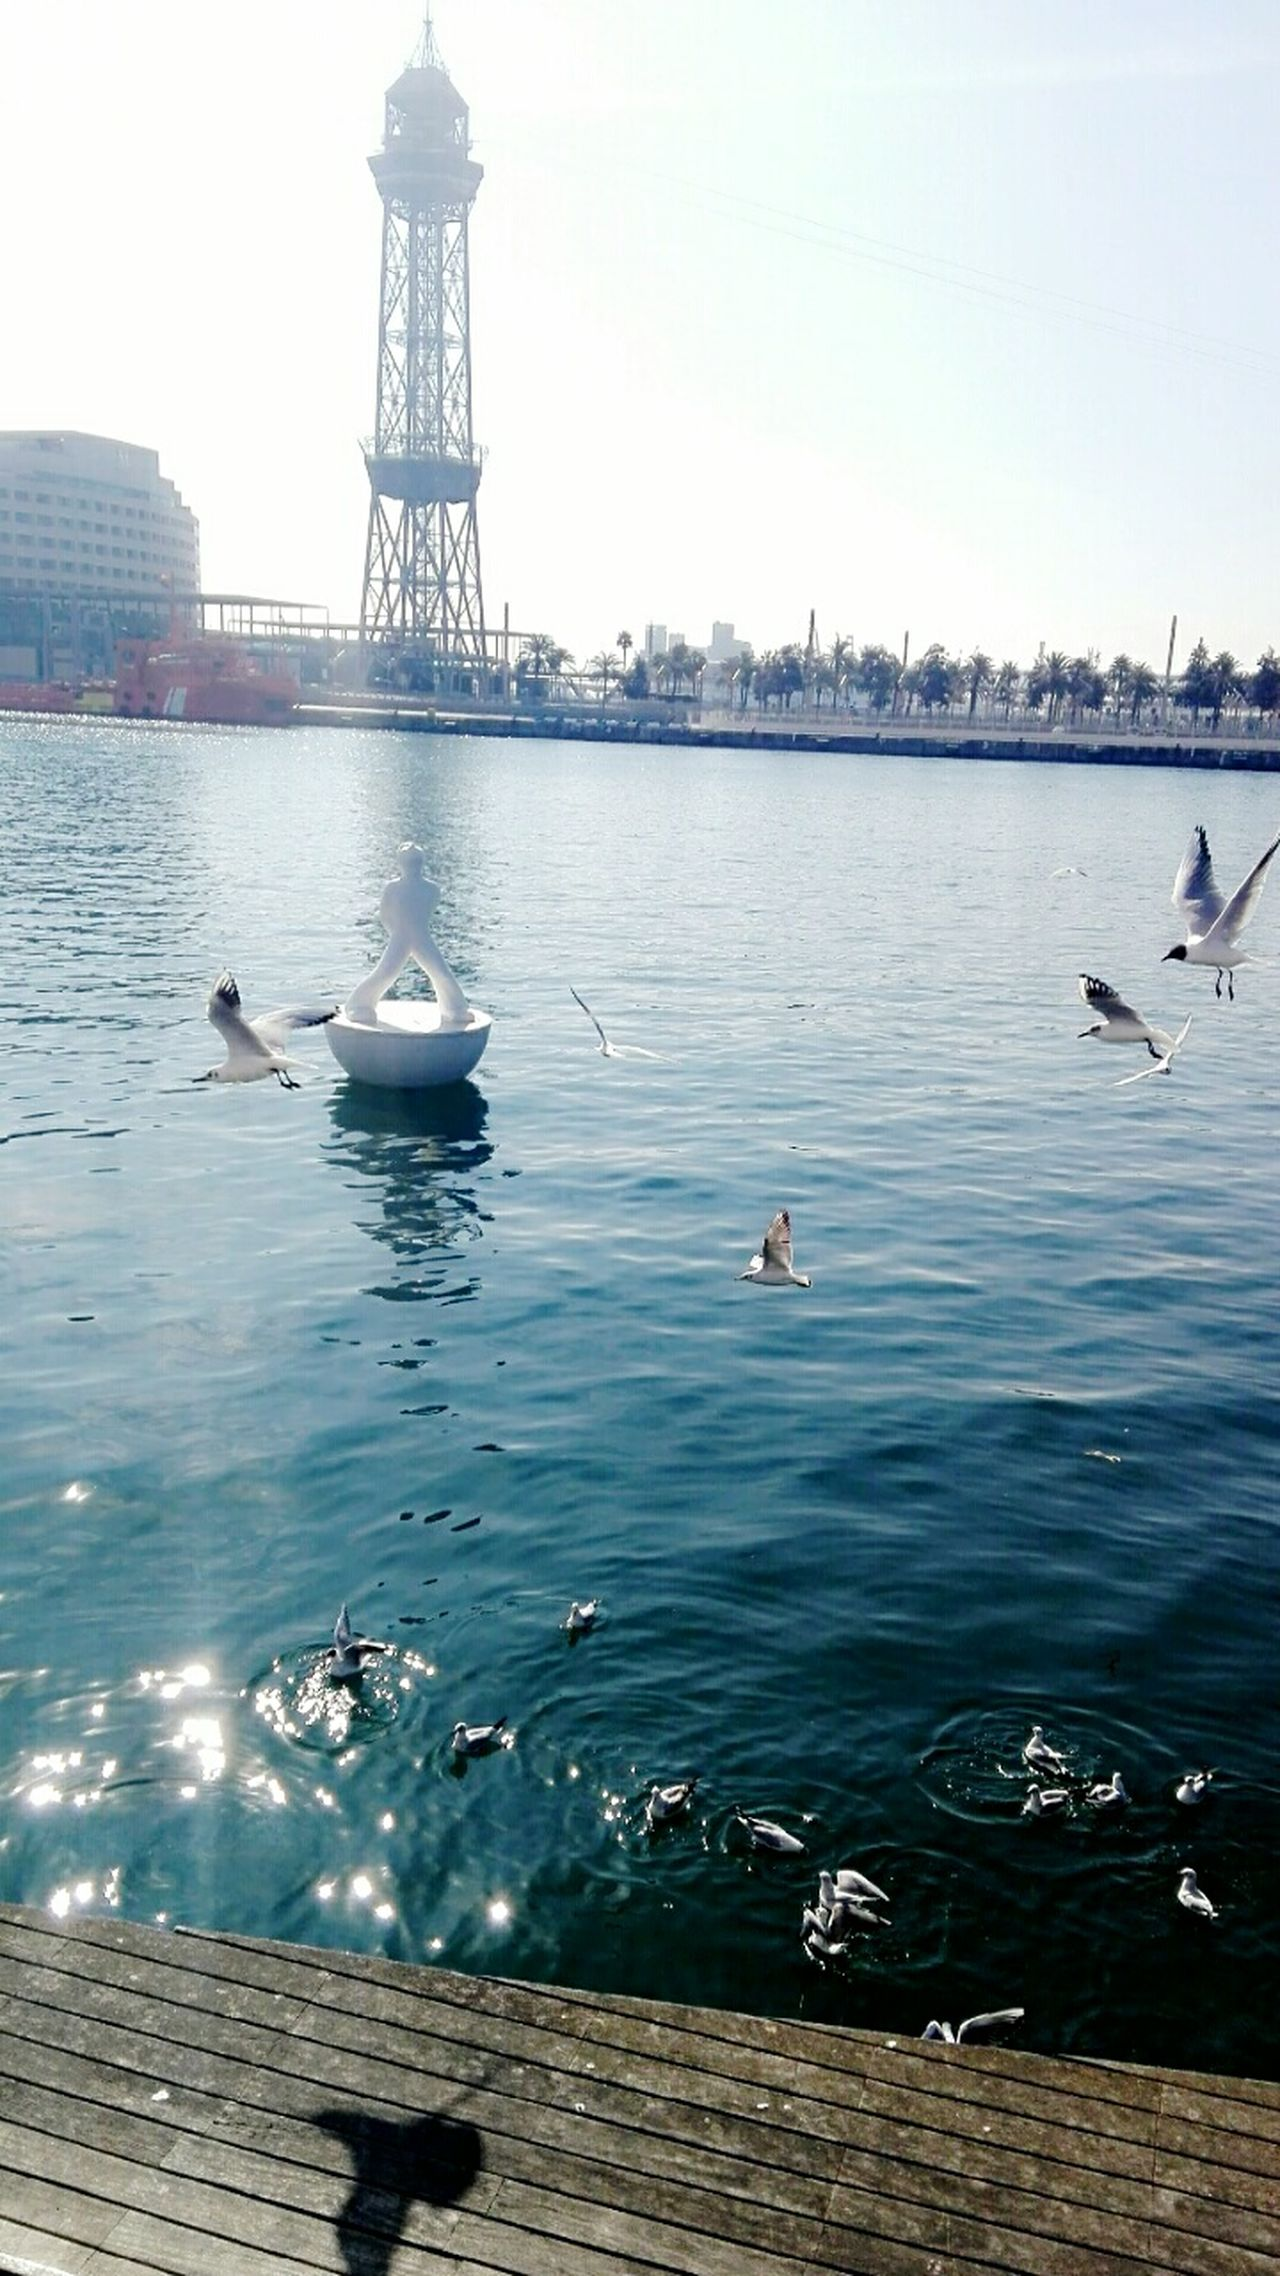 City Water Travel Destinations Bird Sky Sea Outdoors Animal Themes Nature Day Barcelona l BARCELONA PORT Seagulls Midflight Cable Car Art Shadows Dock Puerto Ripples Rippled Water Sunlight Sunbeam